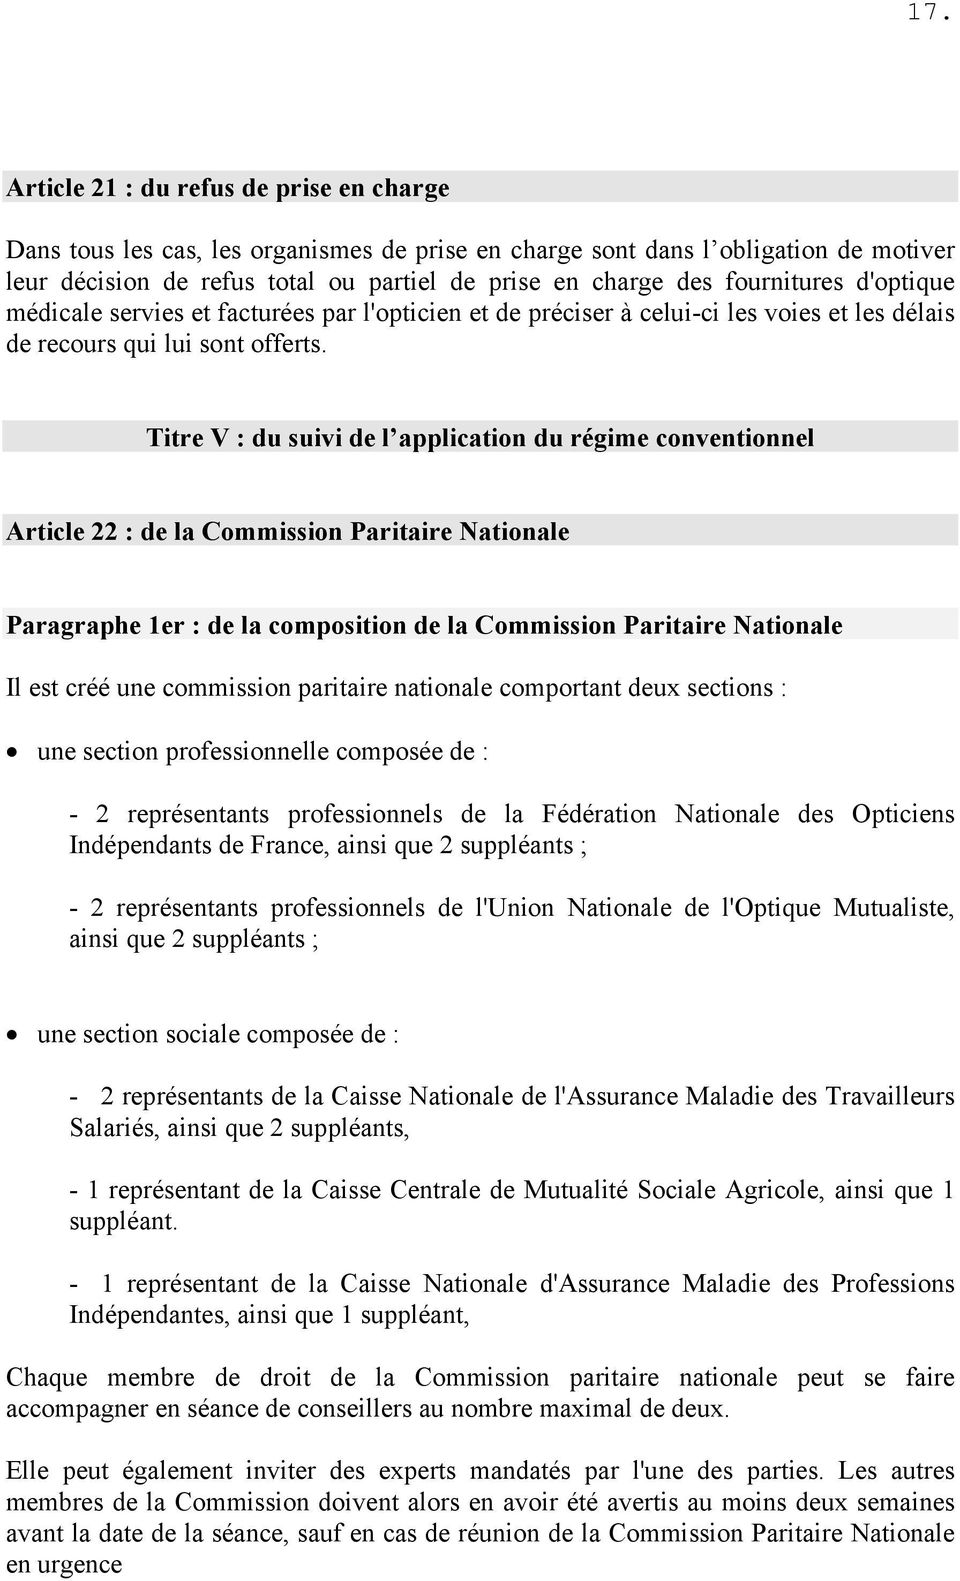 Titre V : du suivi de l application du régime conventionnel Article 22 : de la Commission Paritaire Nationale Paragraphe 1er : de la composition de la Commission Paritaire Nationale Il est créé une